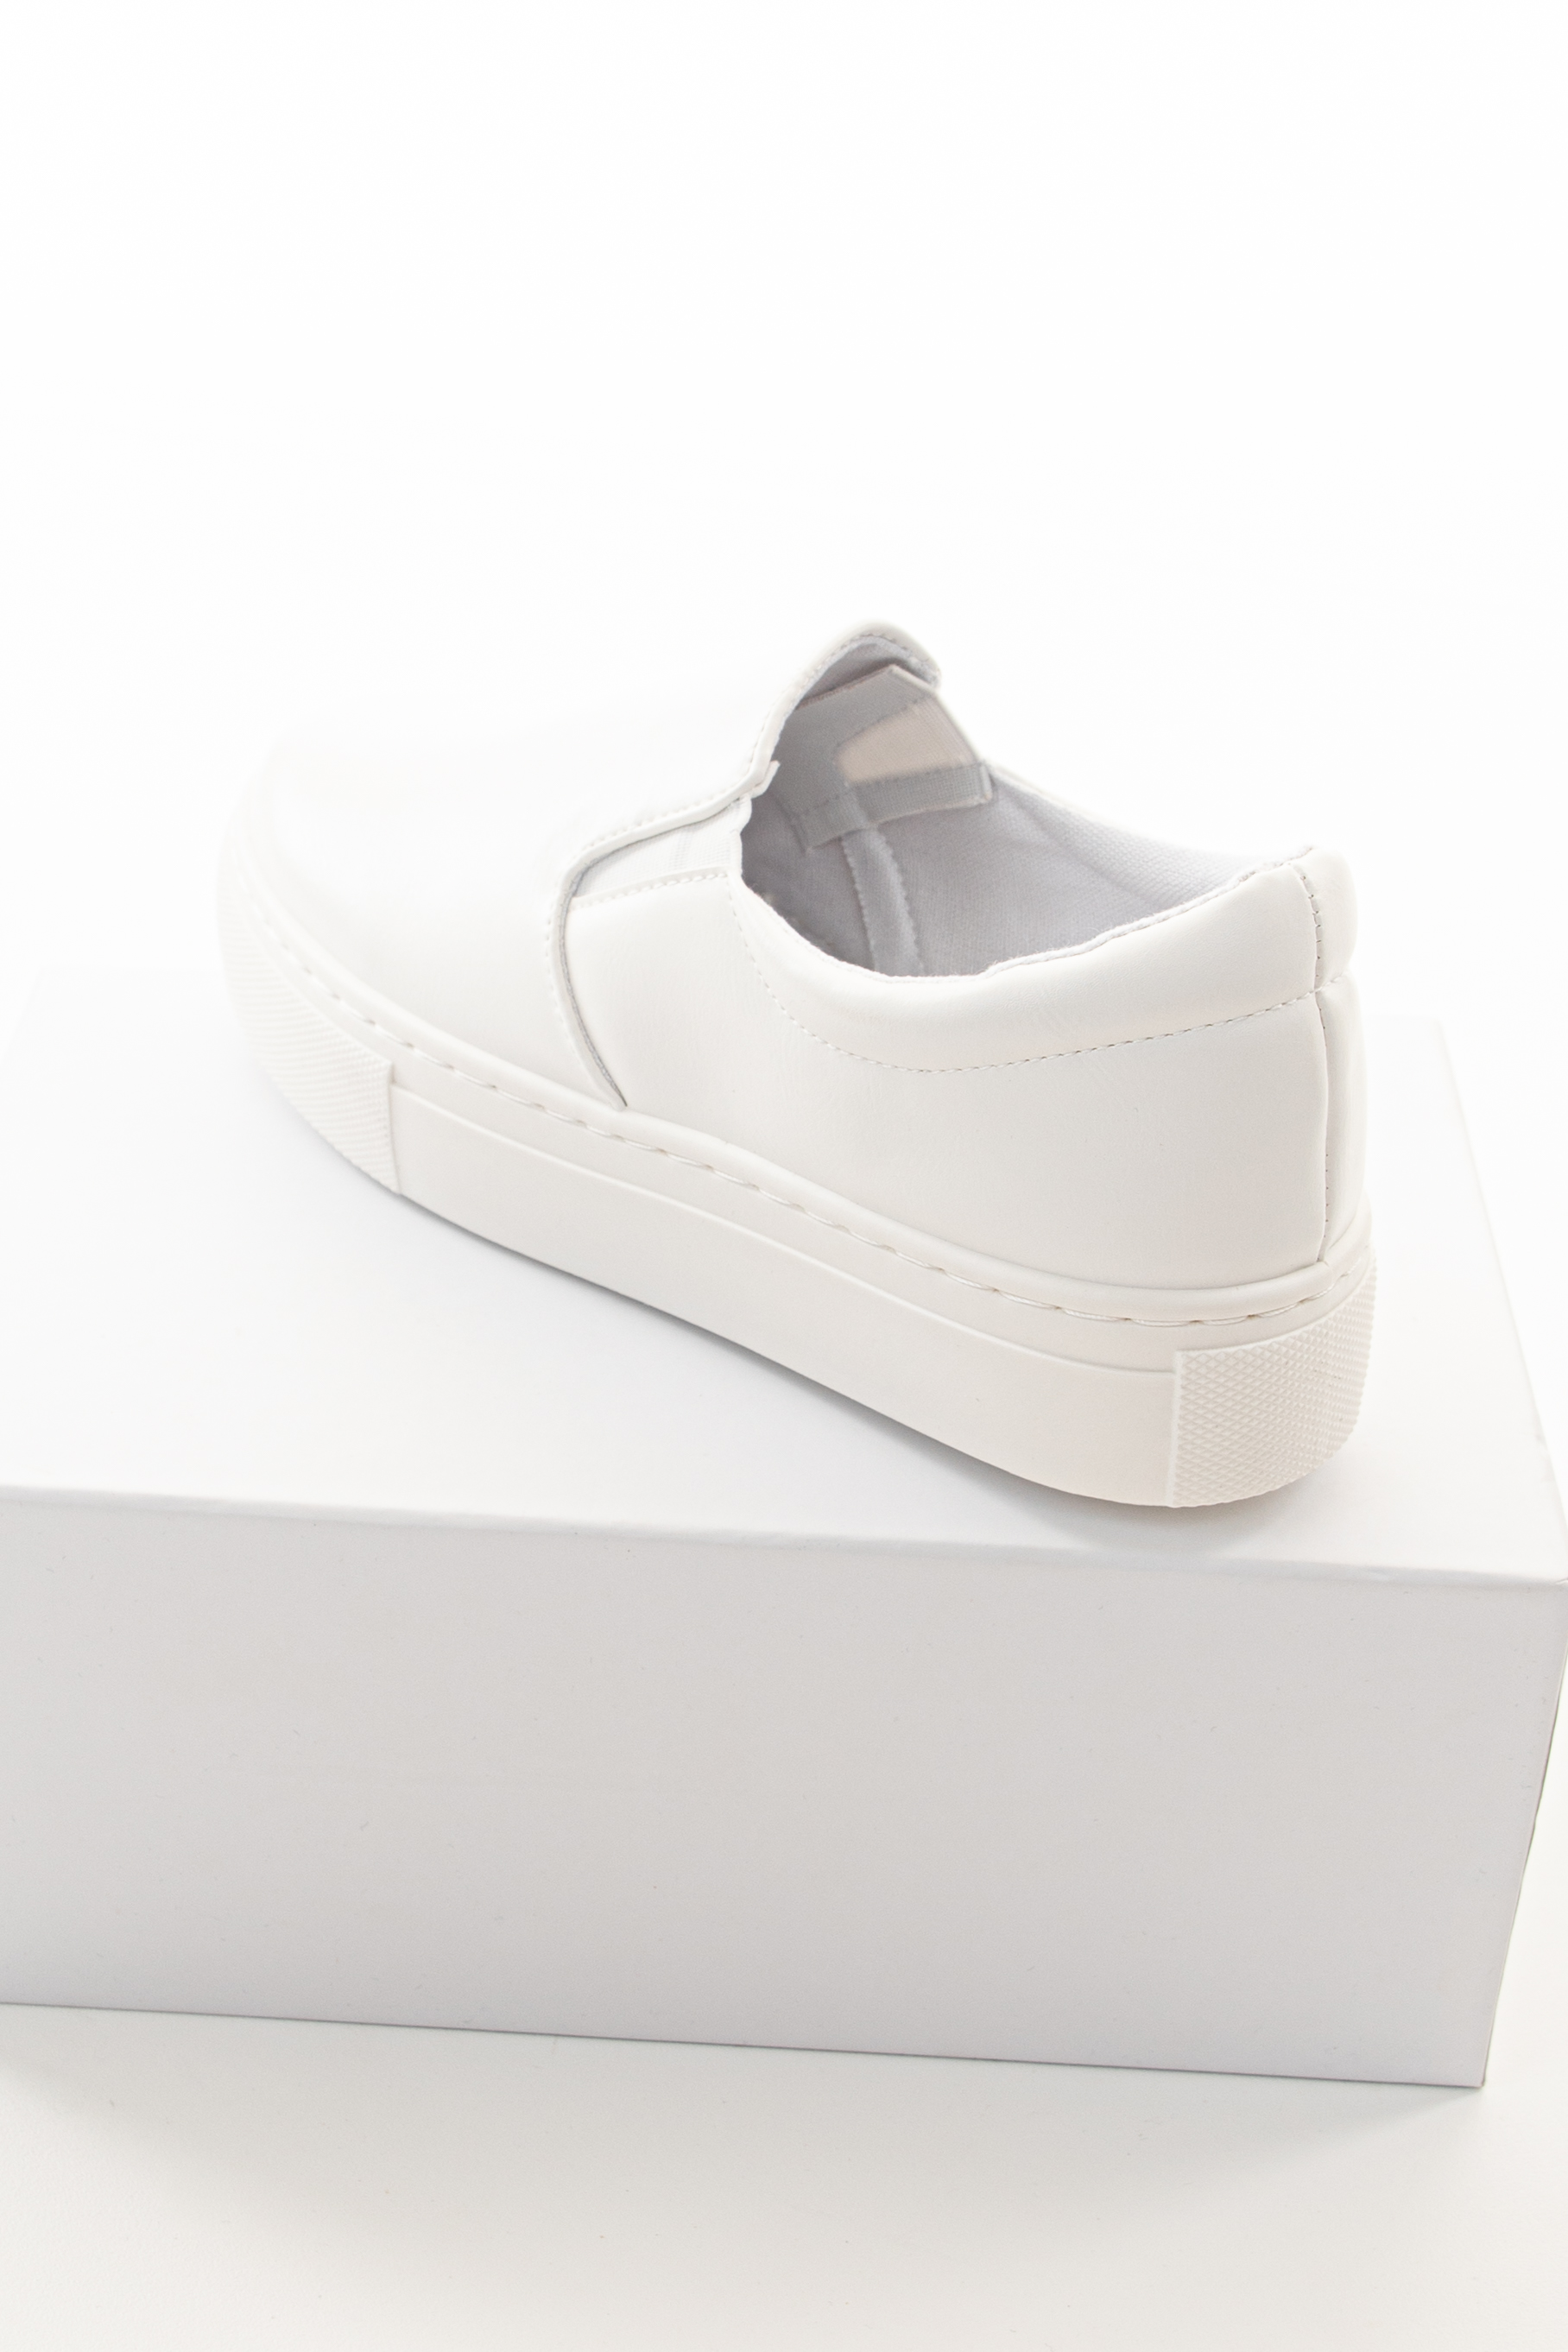 White Faux Leather Slip On Sneakers with Thick Rubber Soles